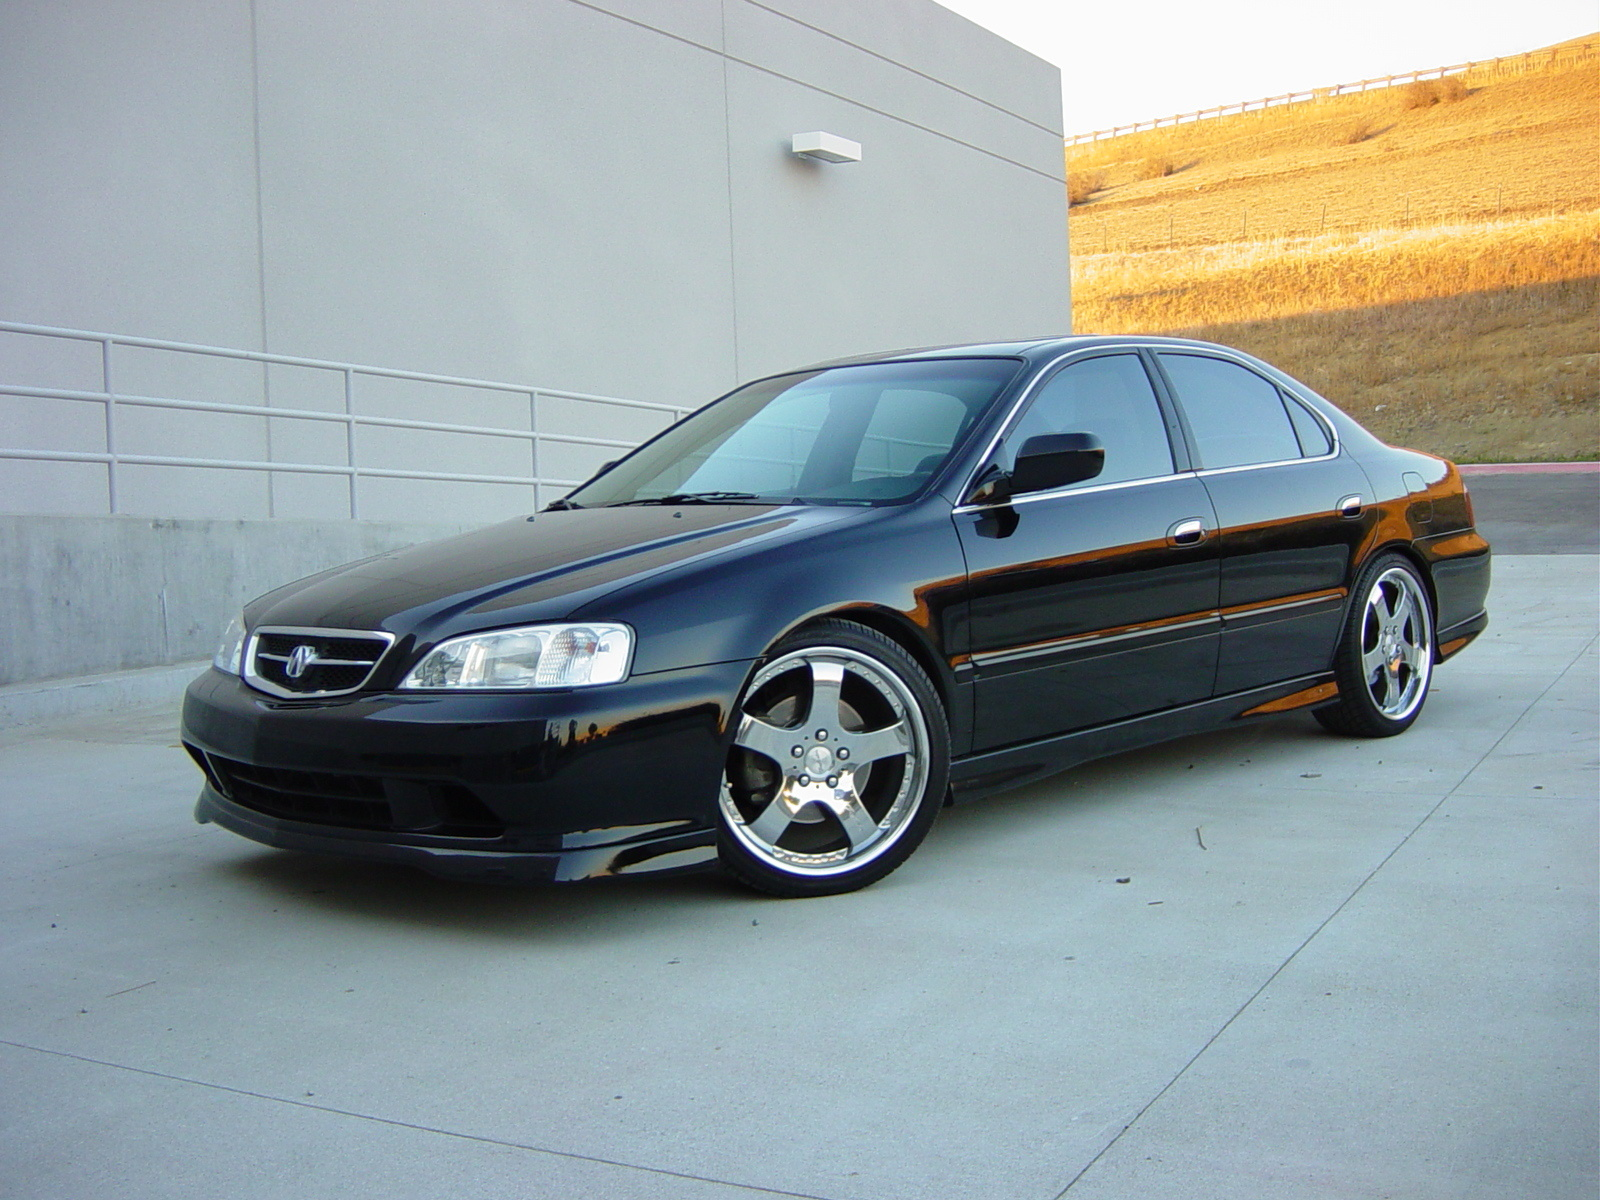 Acura TL Overview CarGurus - Are acura tl good cars